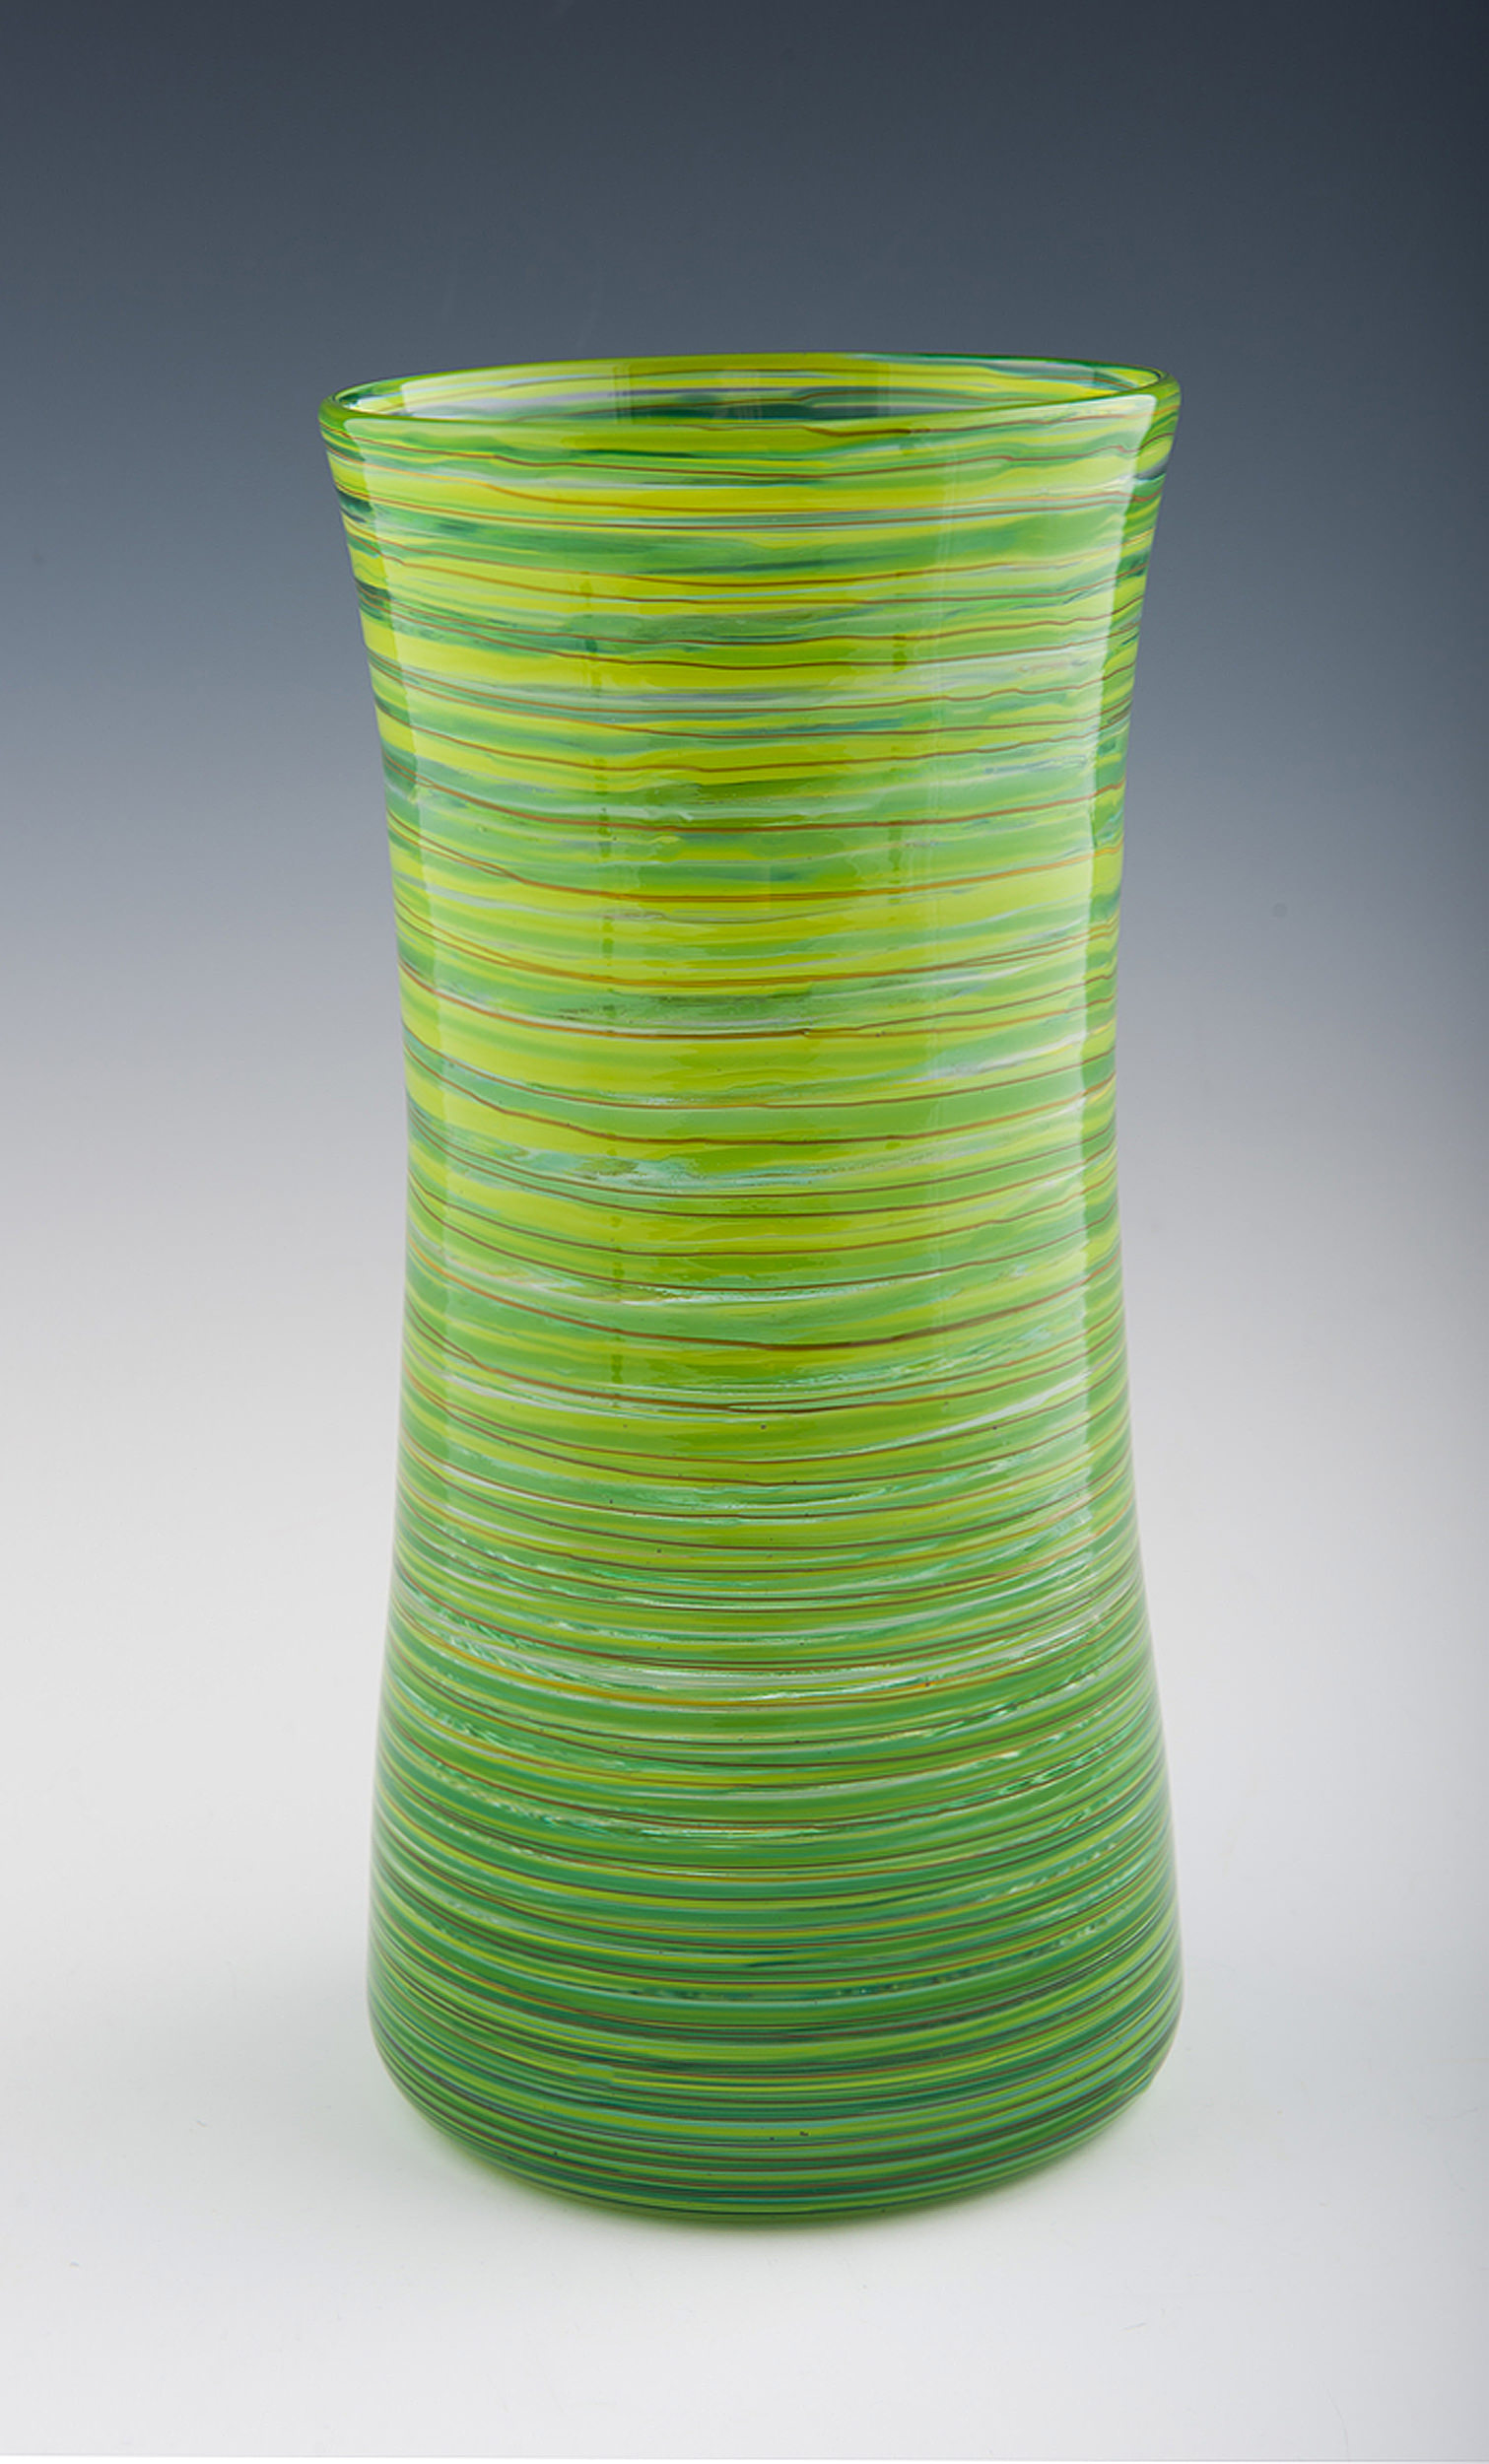 Hoops Vase, seen here in Lime Green.